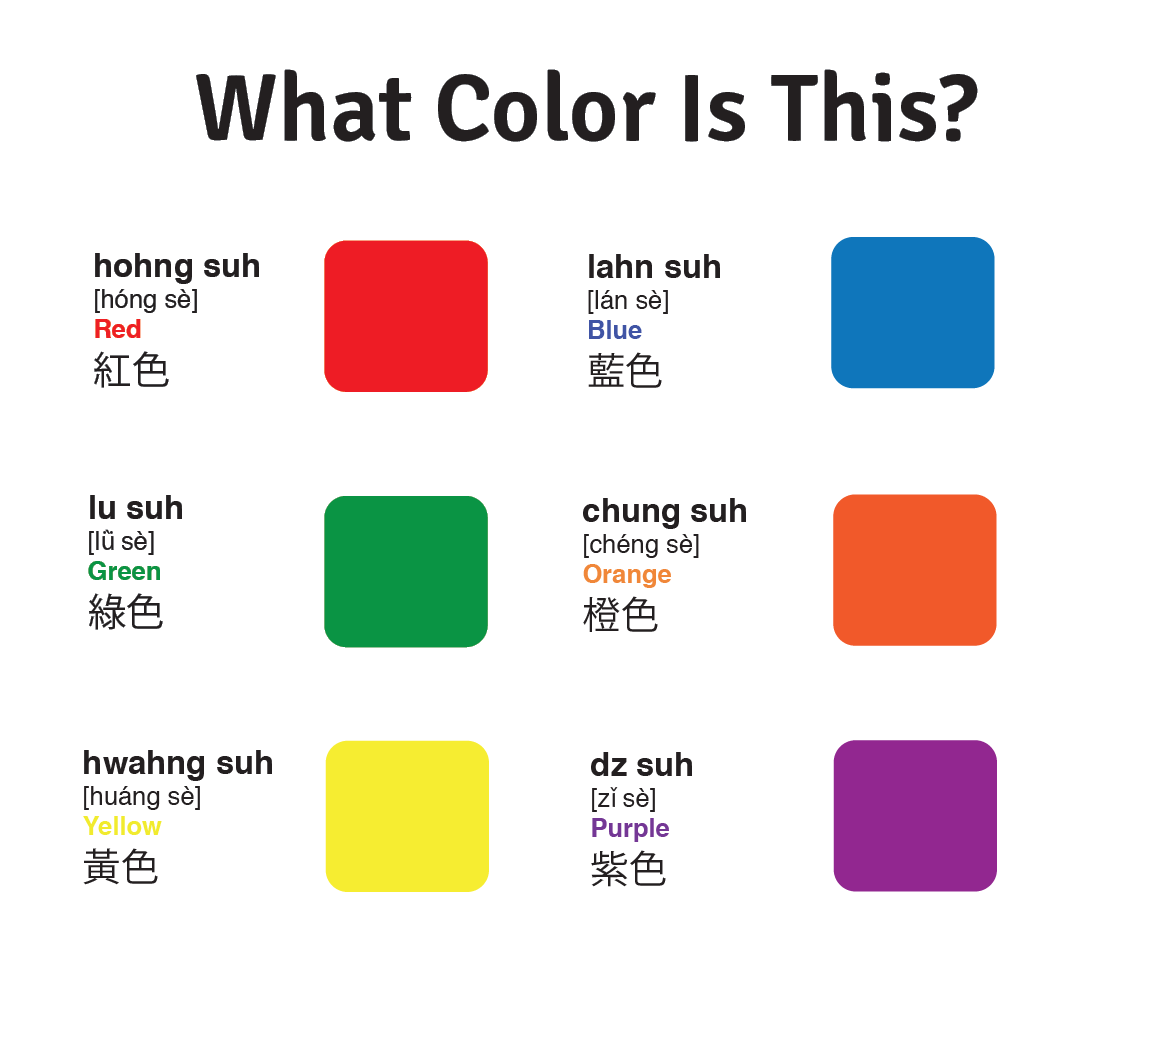 preschool mandarin lesson plan what color is this chinese pinterest mandarin lessons. Black Bedroom Furniture Sets. Home Design Ideas